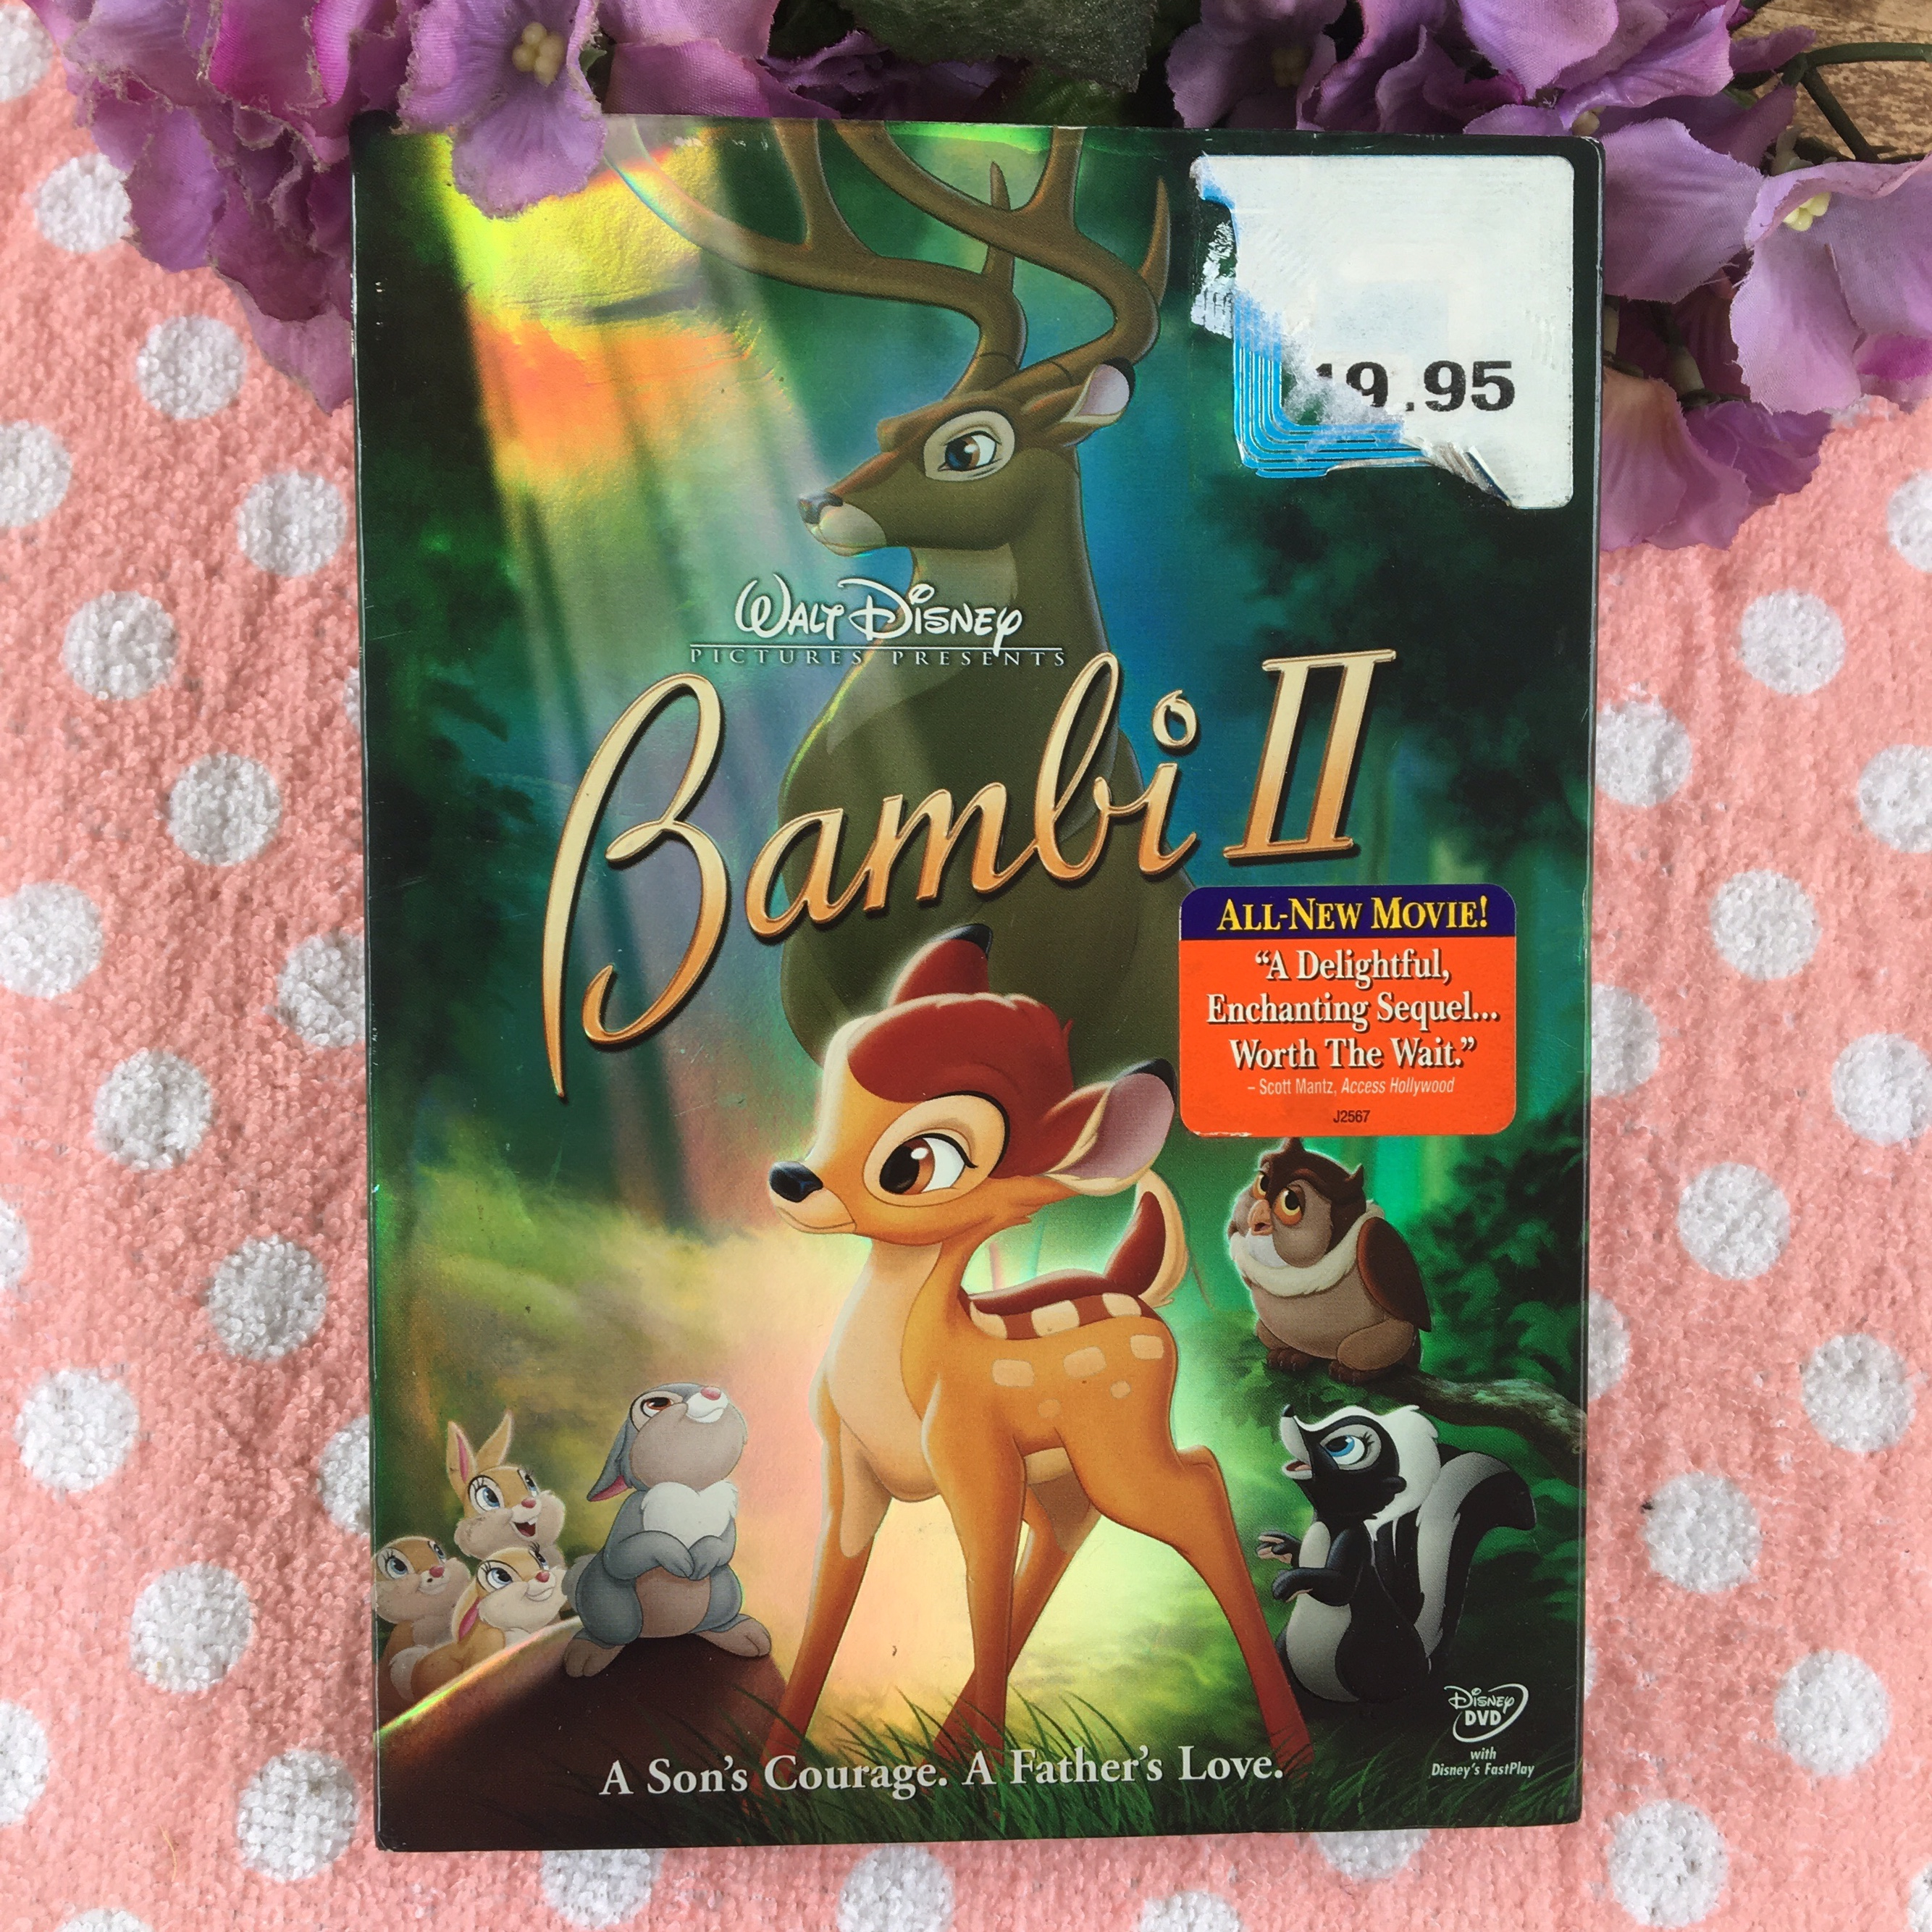 Walt disney's Bambi 2  Beautiful and heartwarming    - Depop